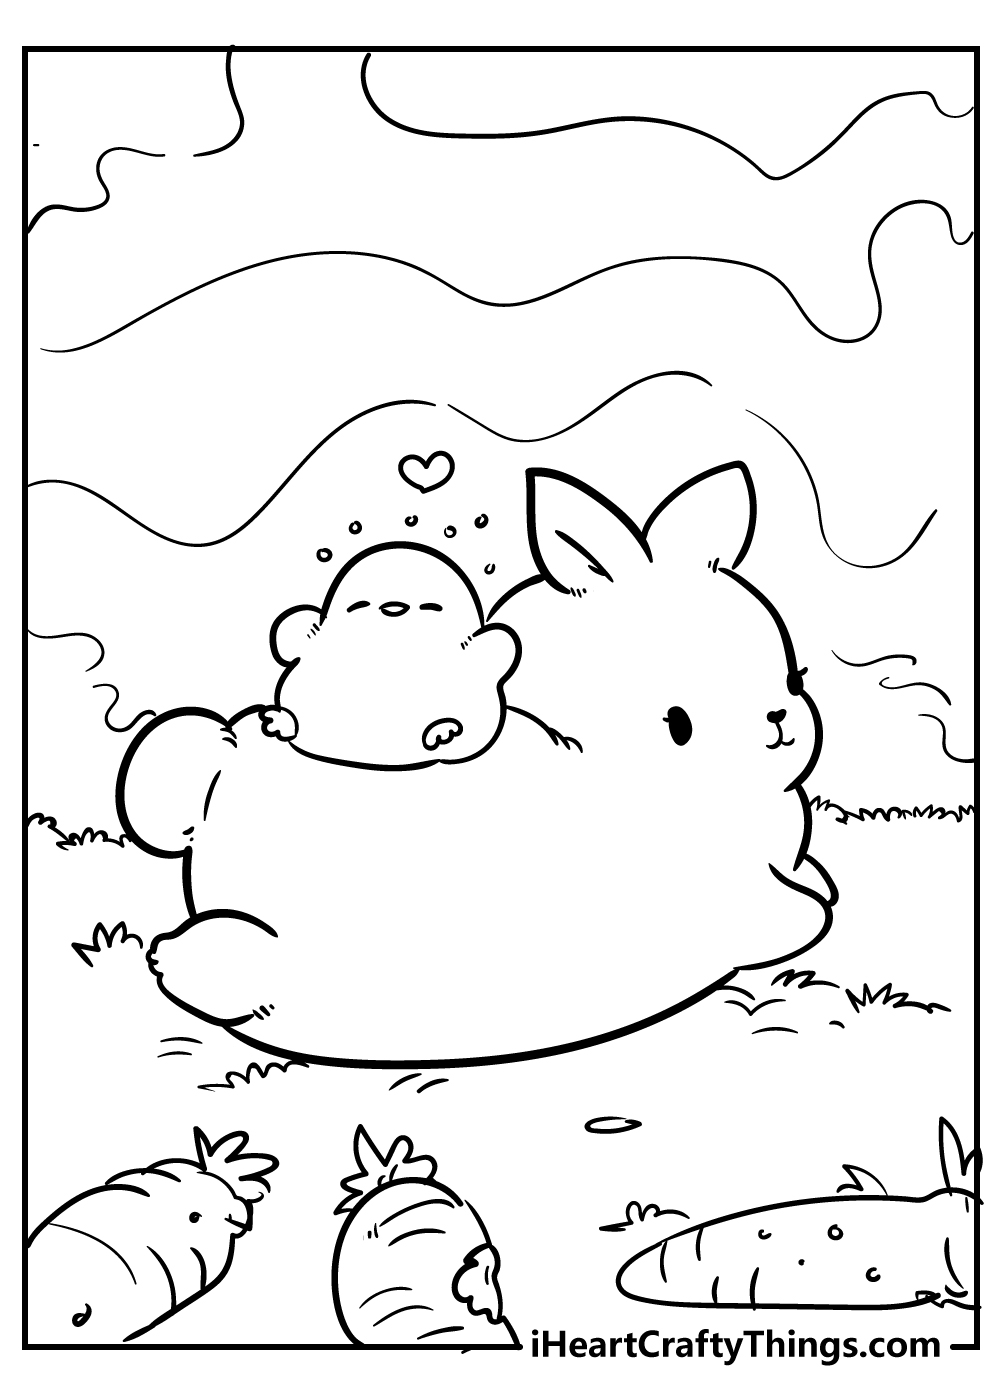 cute animals coloring pages for kids free pdf download